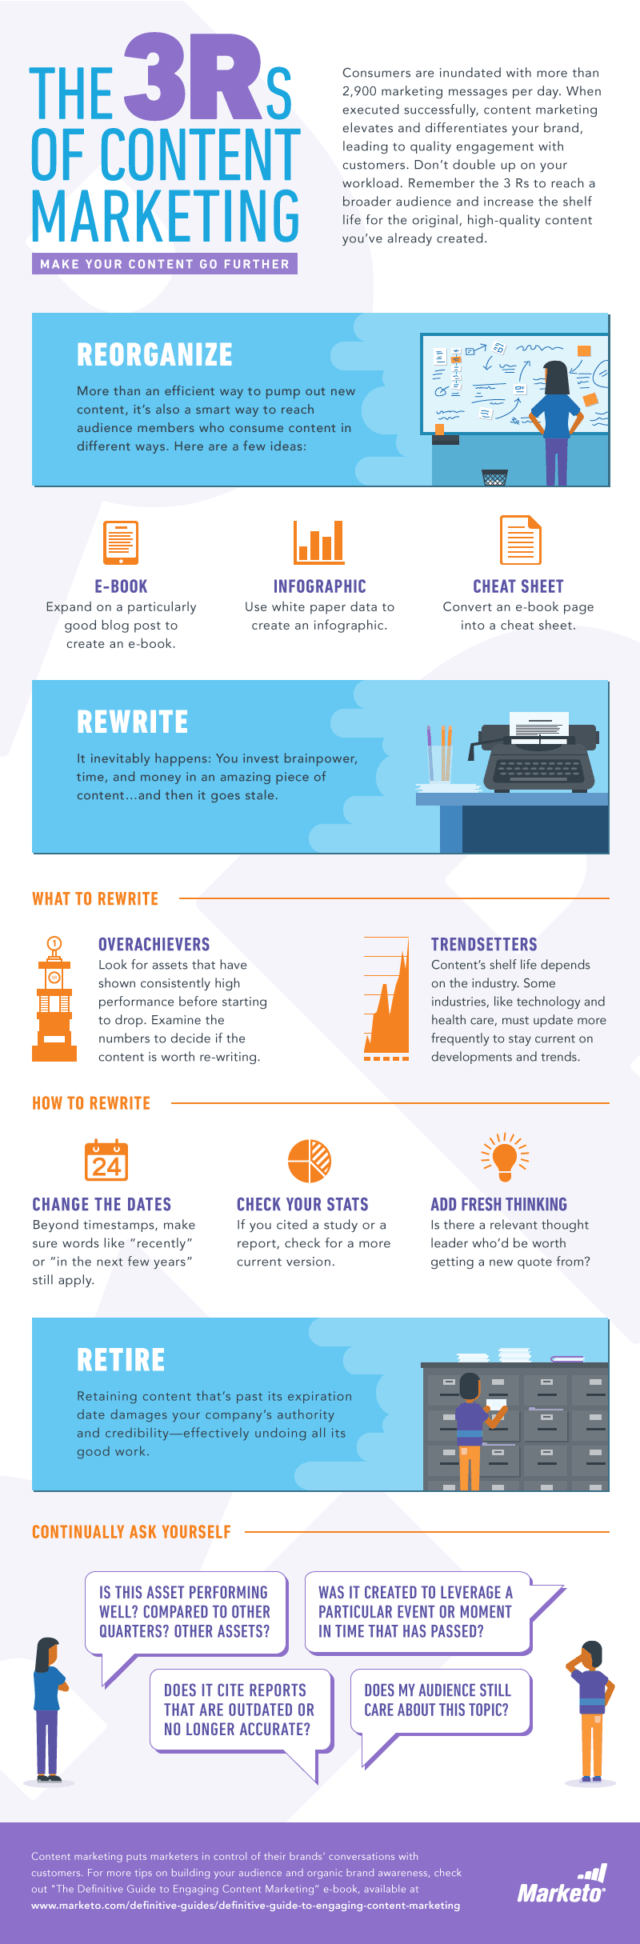 the-3-Rs-of-content-marketing-infographic